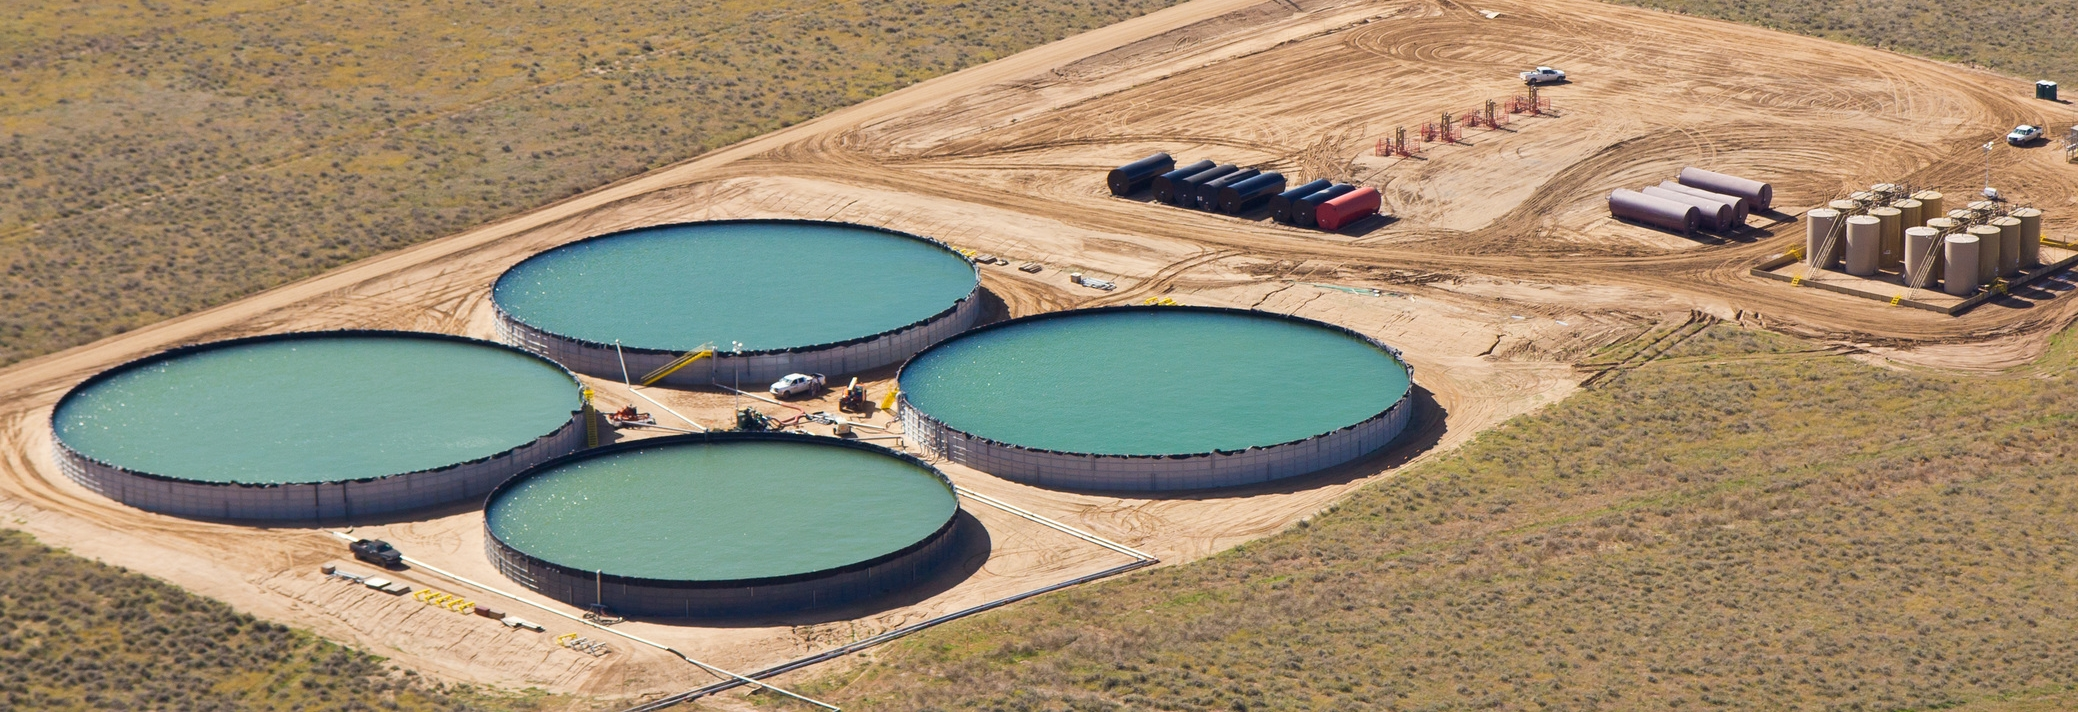 frac pond and pit liners